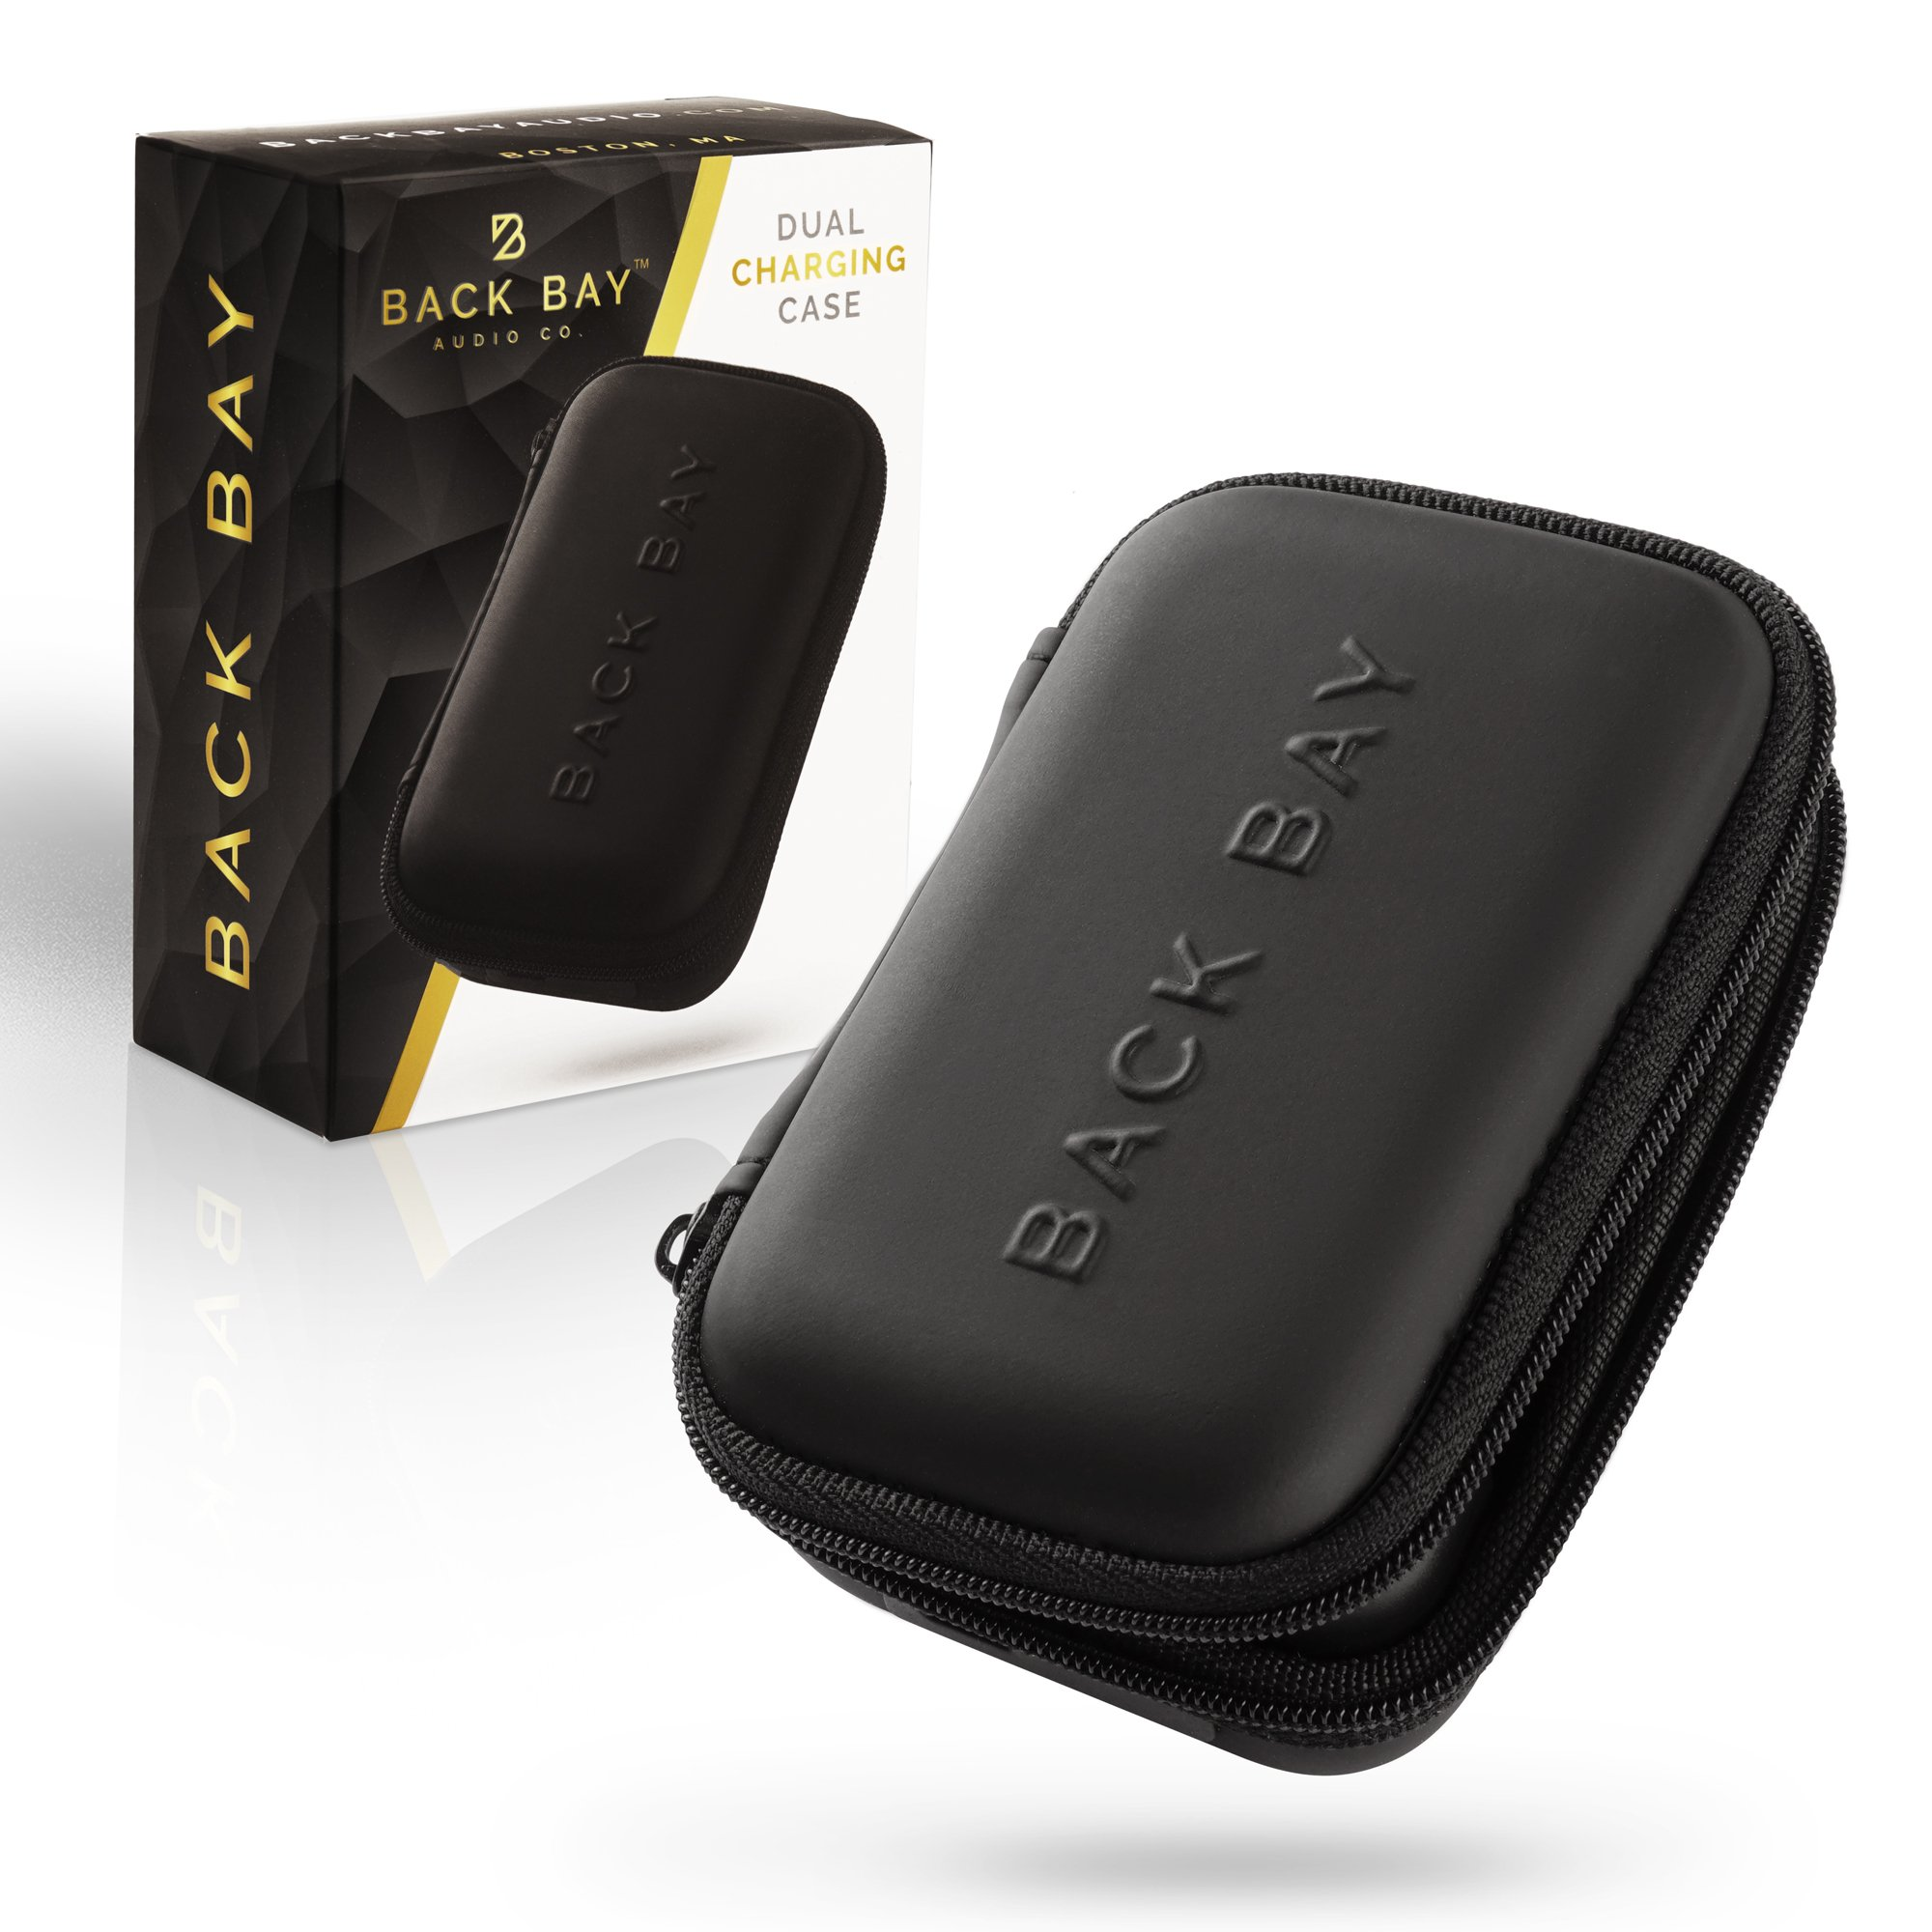 Back Bay™ Dual Charging Case - Power Bank Case for Bluetooth Earbuds, Headphones and Fitness Trackers. Compatible with Beats, Jaybird, Bose, JBL, Fitbit, Apple Watch and Others